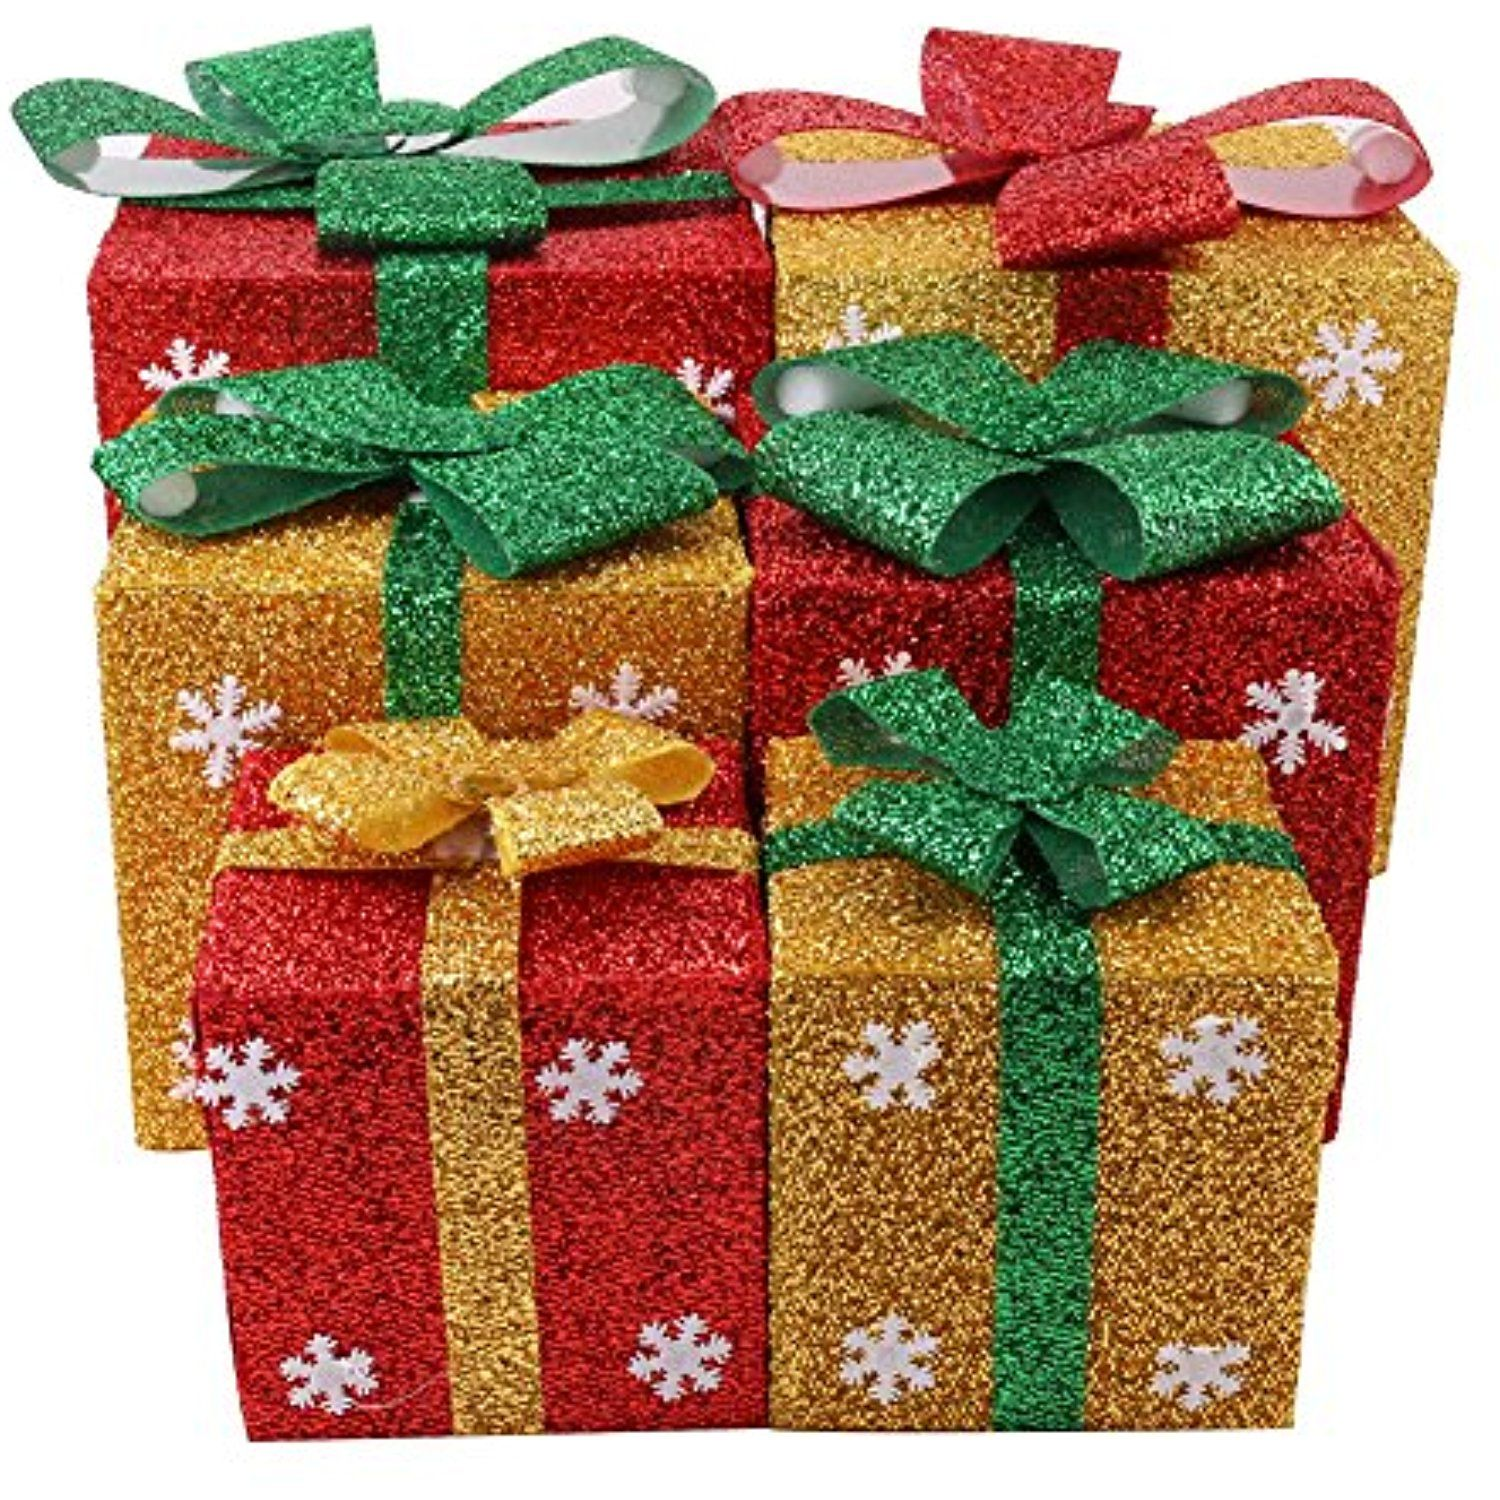 Christmas Gift Box Decorations Christmas Gift Boxes Decoration  Lighted Sparkling Sisal Red